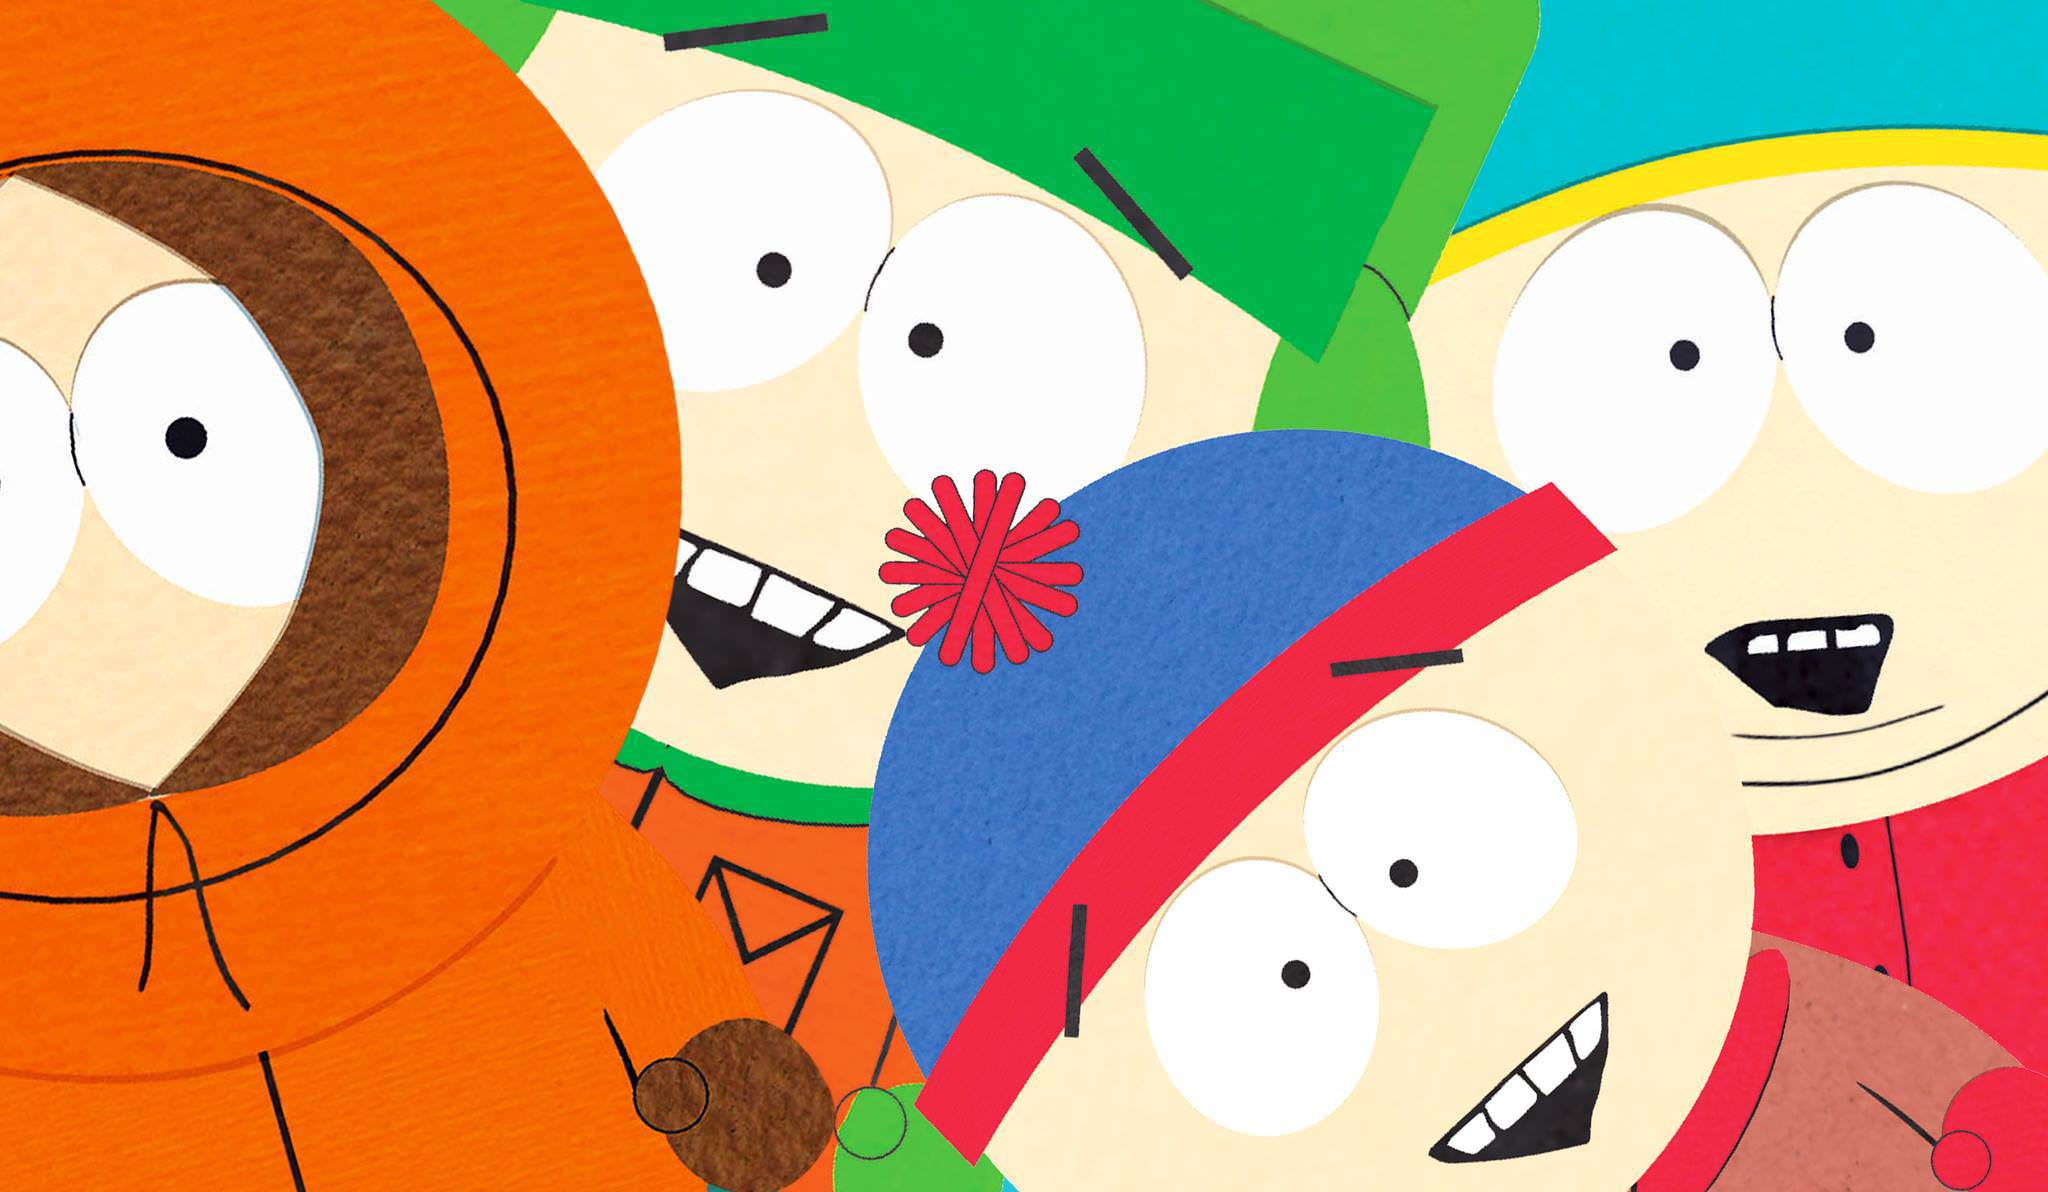 South Park Wallpapers HD team